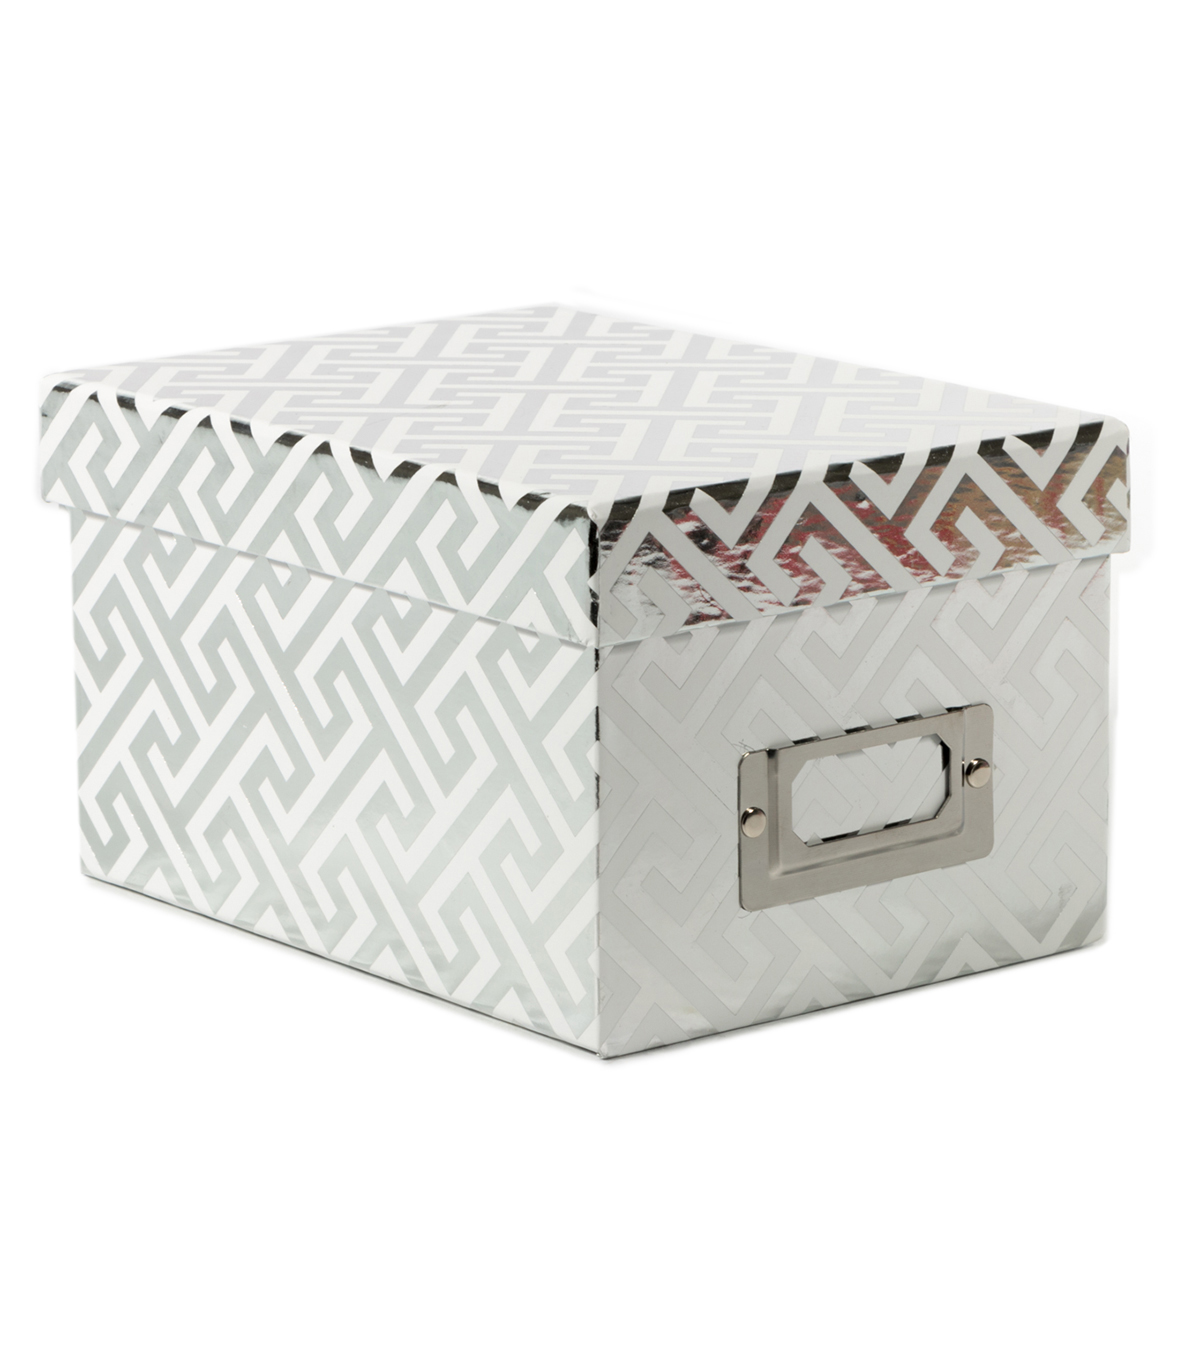 DCWV Mini Box: White with Greek Key silver foil designs